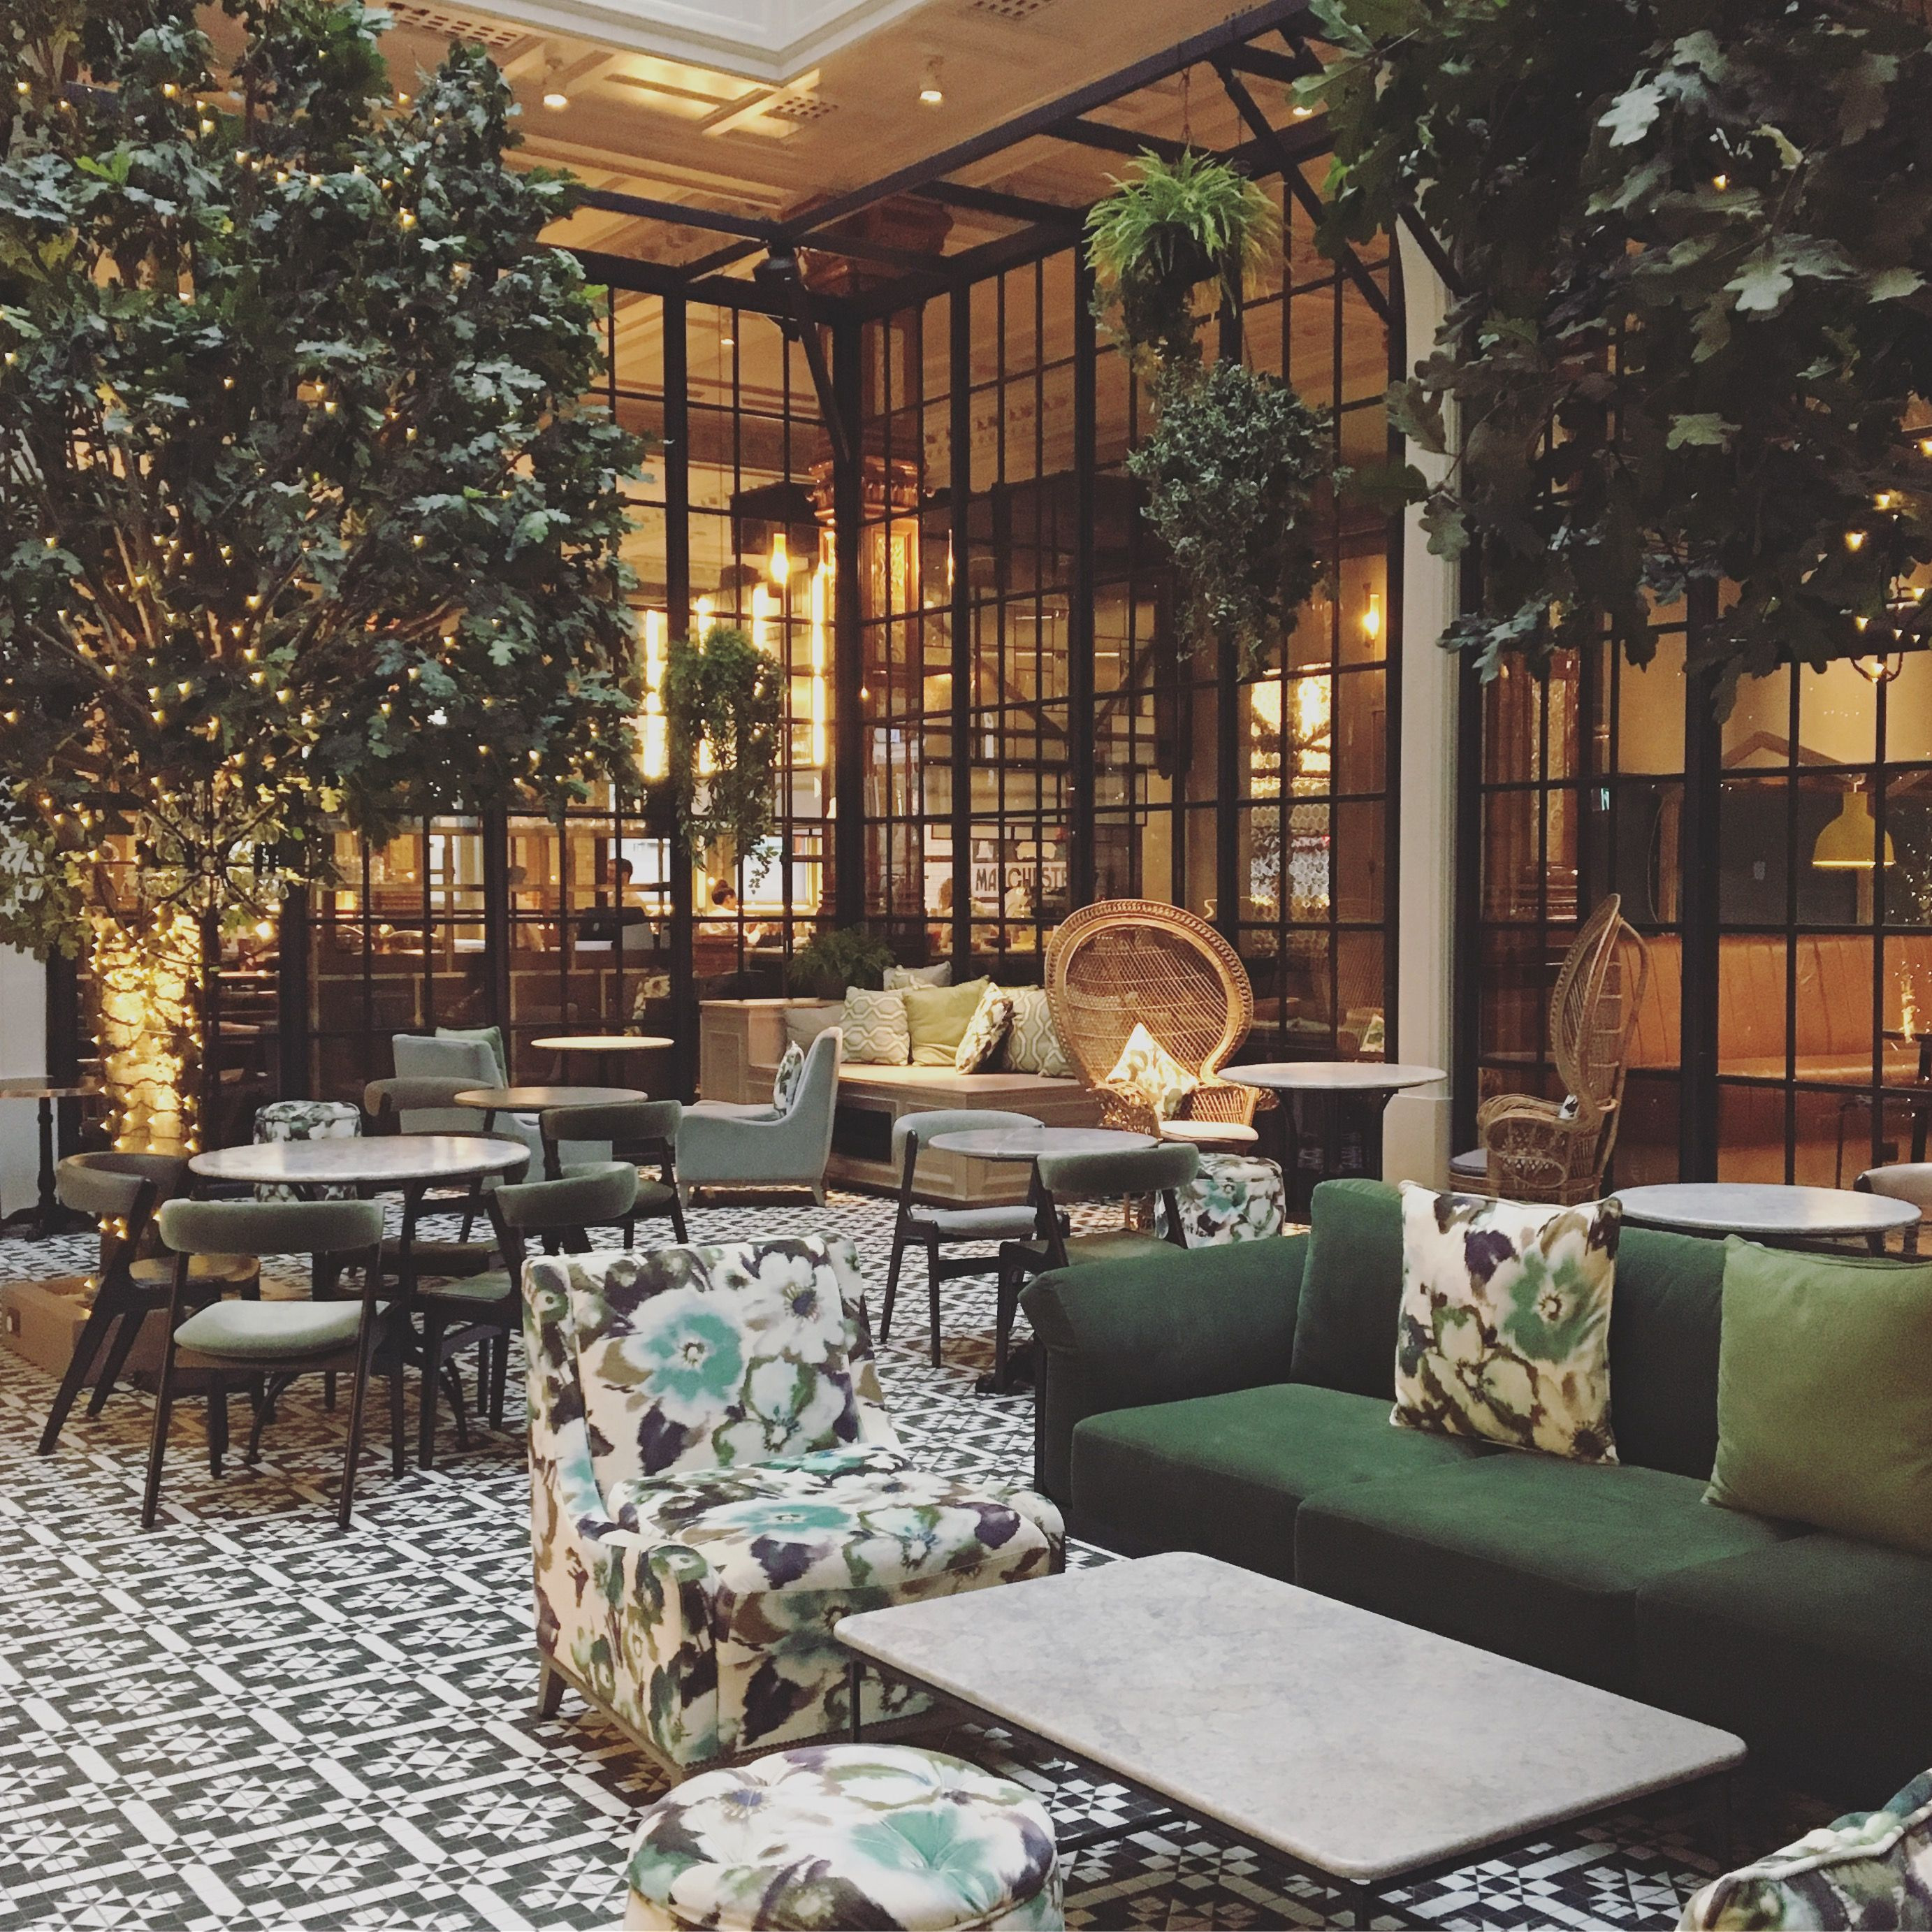 Winter Garden in the Refuge bar at The Principal Hotel Manchester